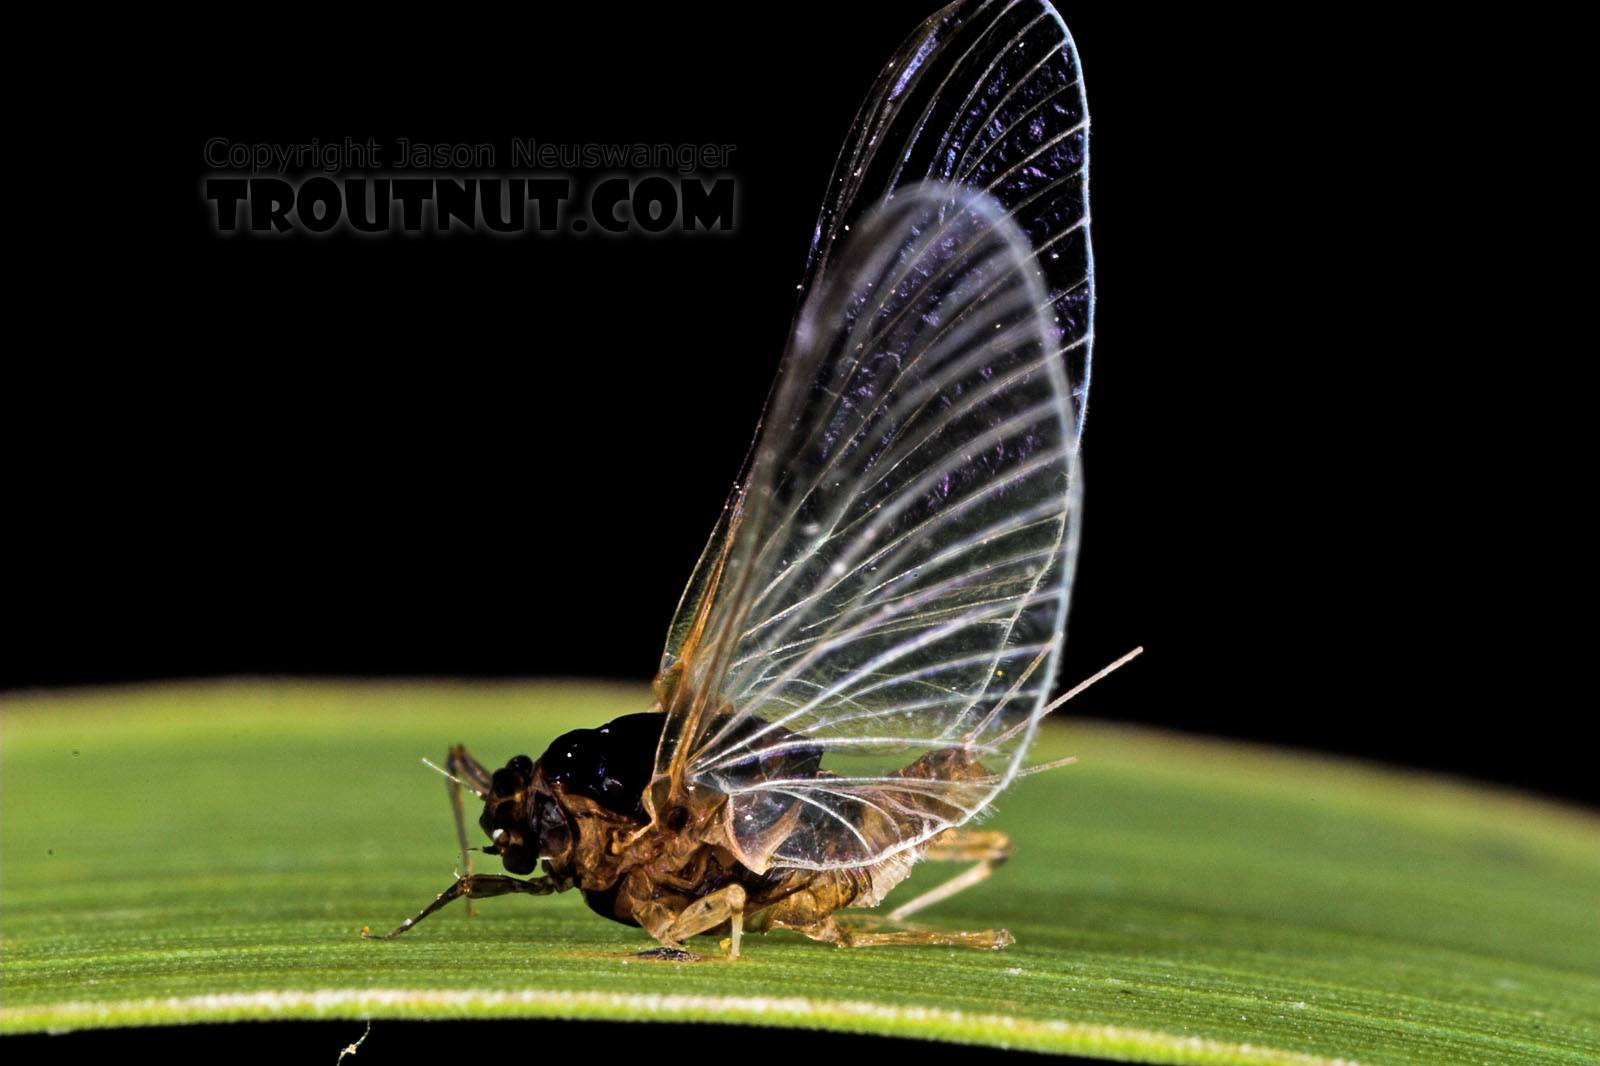 Female Tricorythodes (Tricos) Mayfly Spinner from the Neversink River in New York